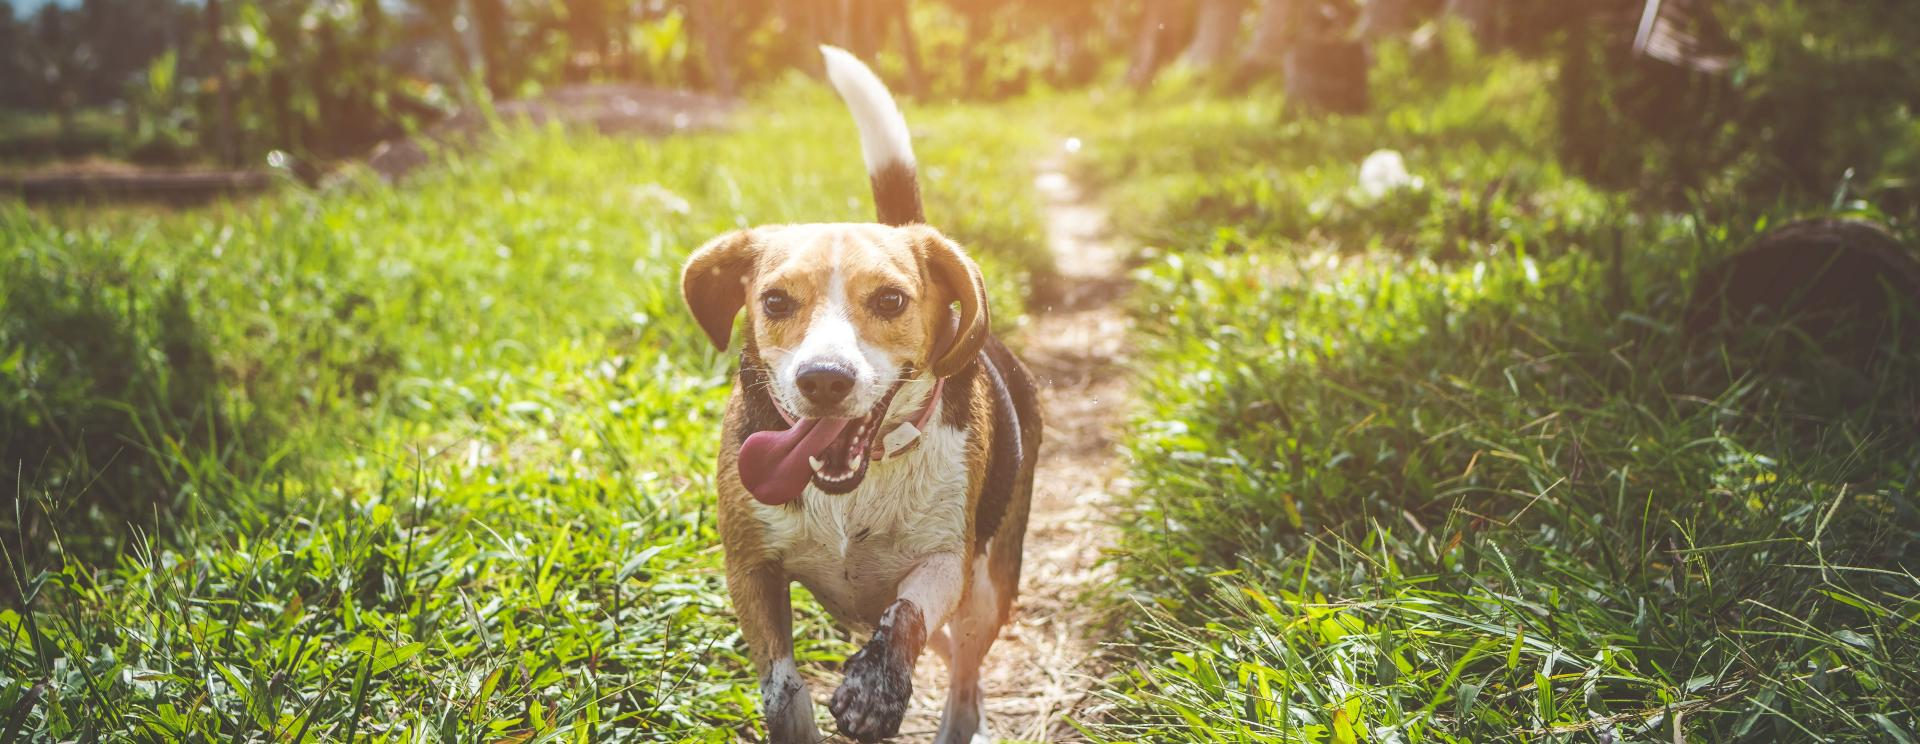 Family Fun Day: A Day for Dogs